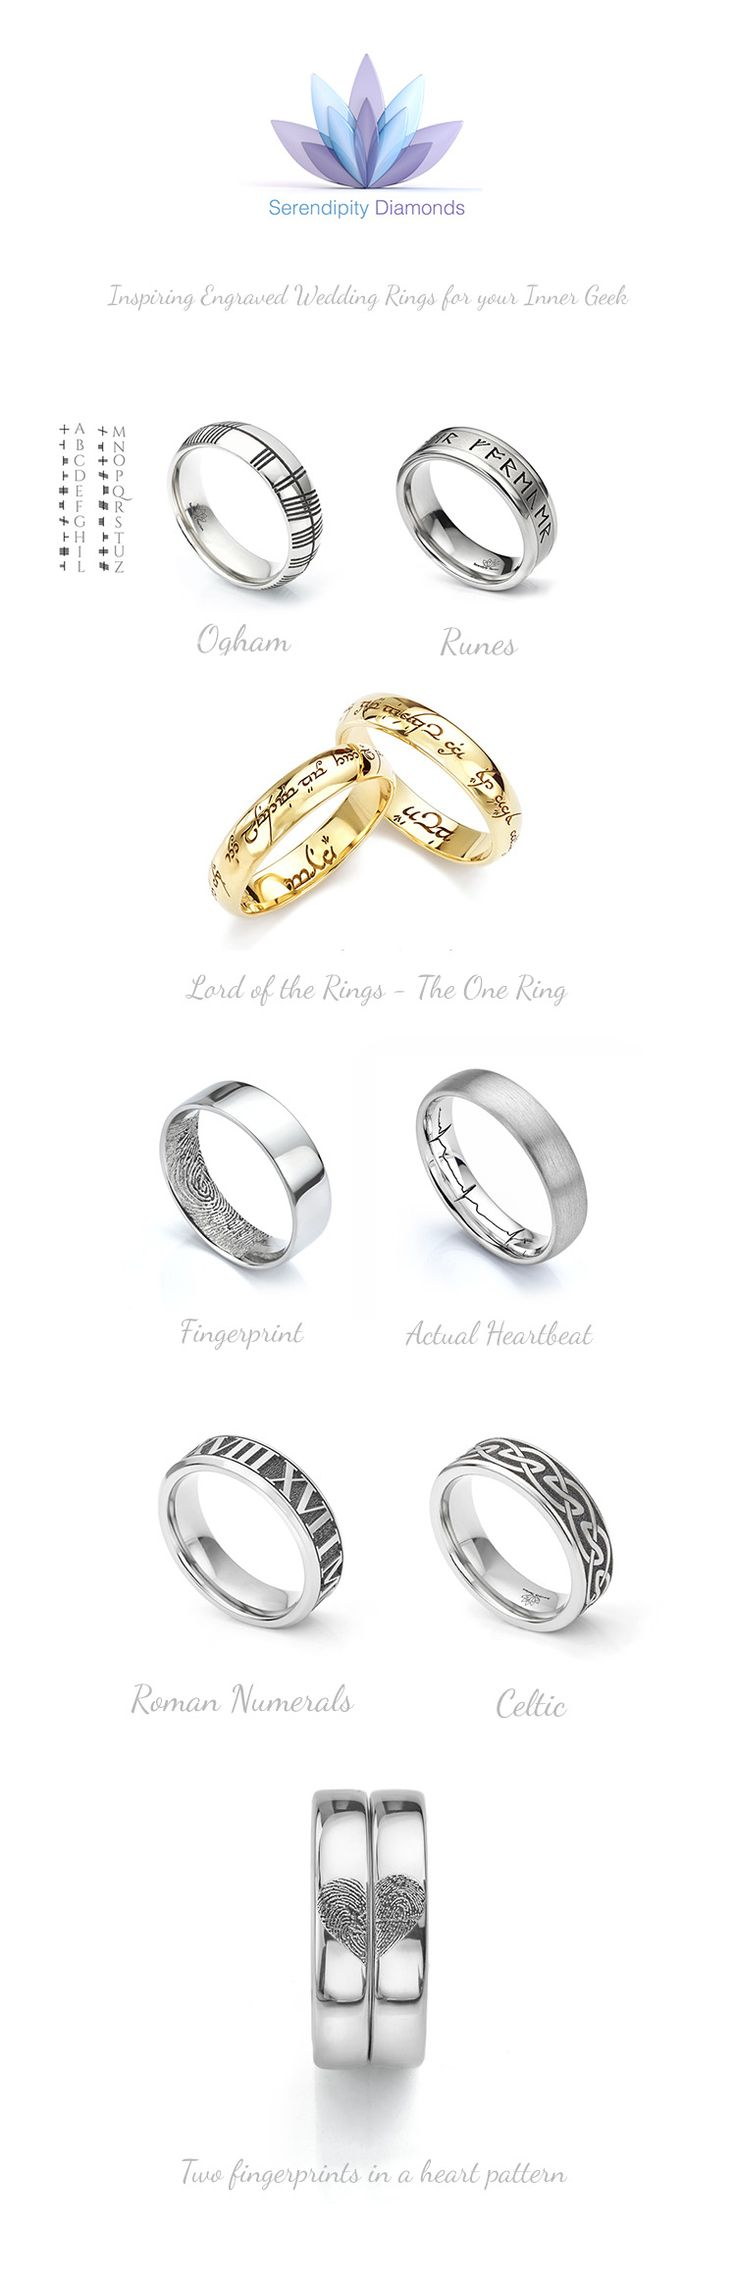 Unusual wedding rings for your inner geek. Browse a collection of talk to us about creating your own bespoke wedding ring. We engrave runes, fingerprints, heartbeats, heart pattern fingerprints, and Elvish onto any of our wedding ring styles. Contact us today to create your very own personalised wedding rings.